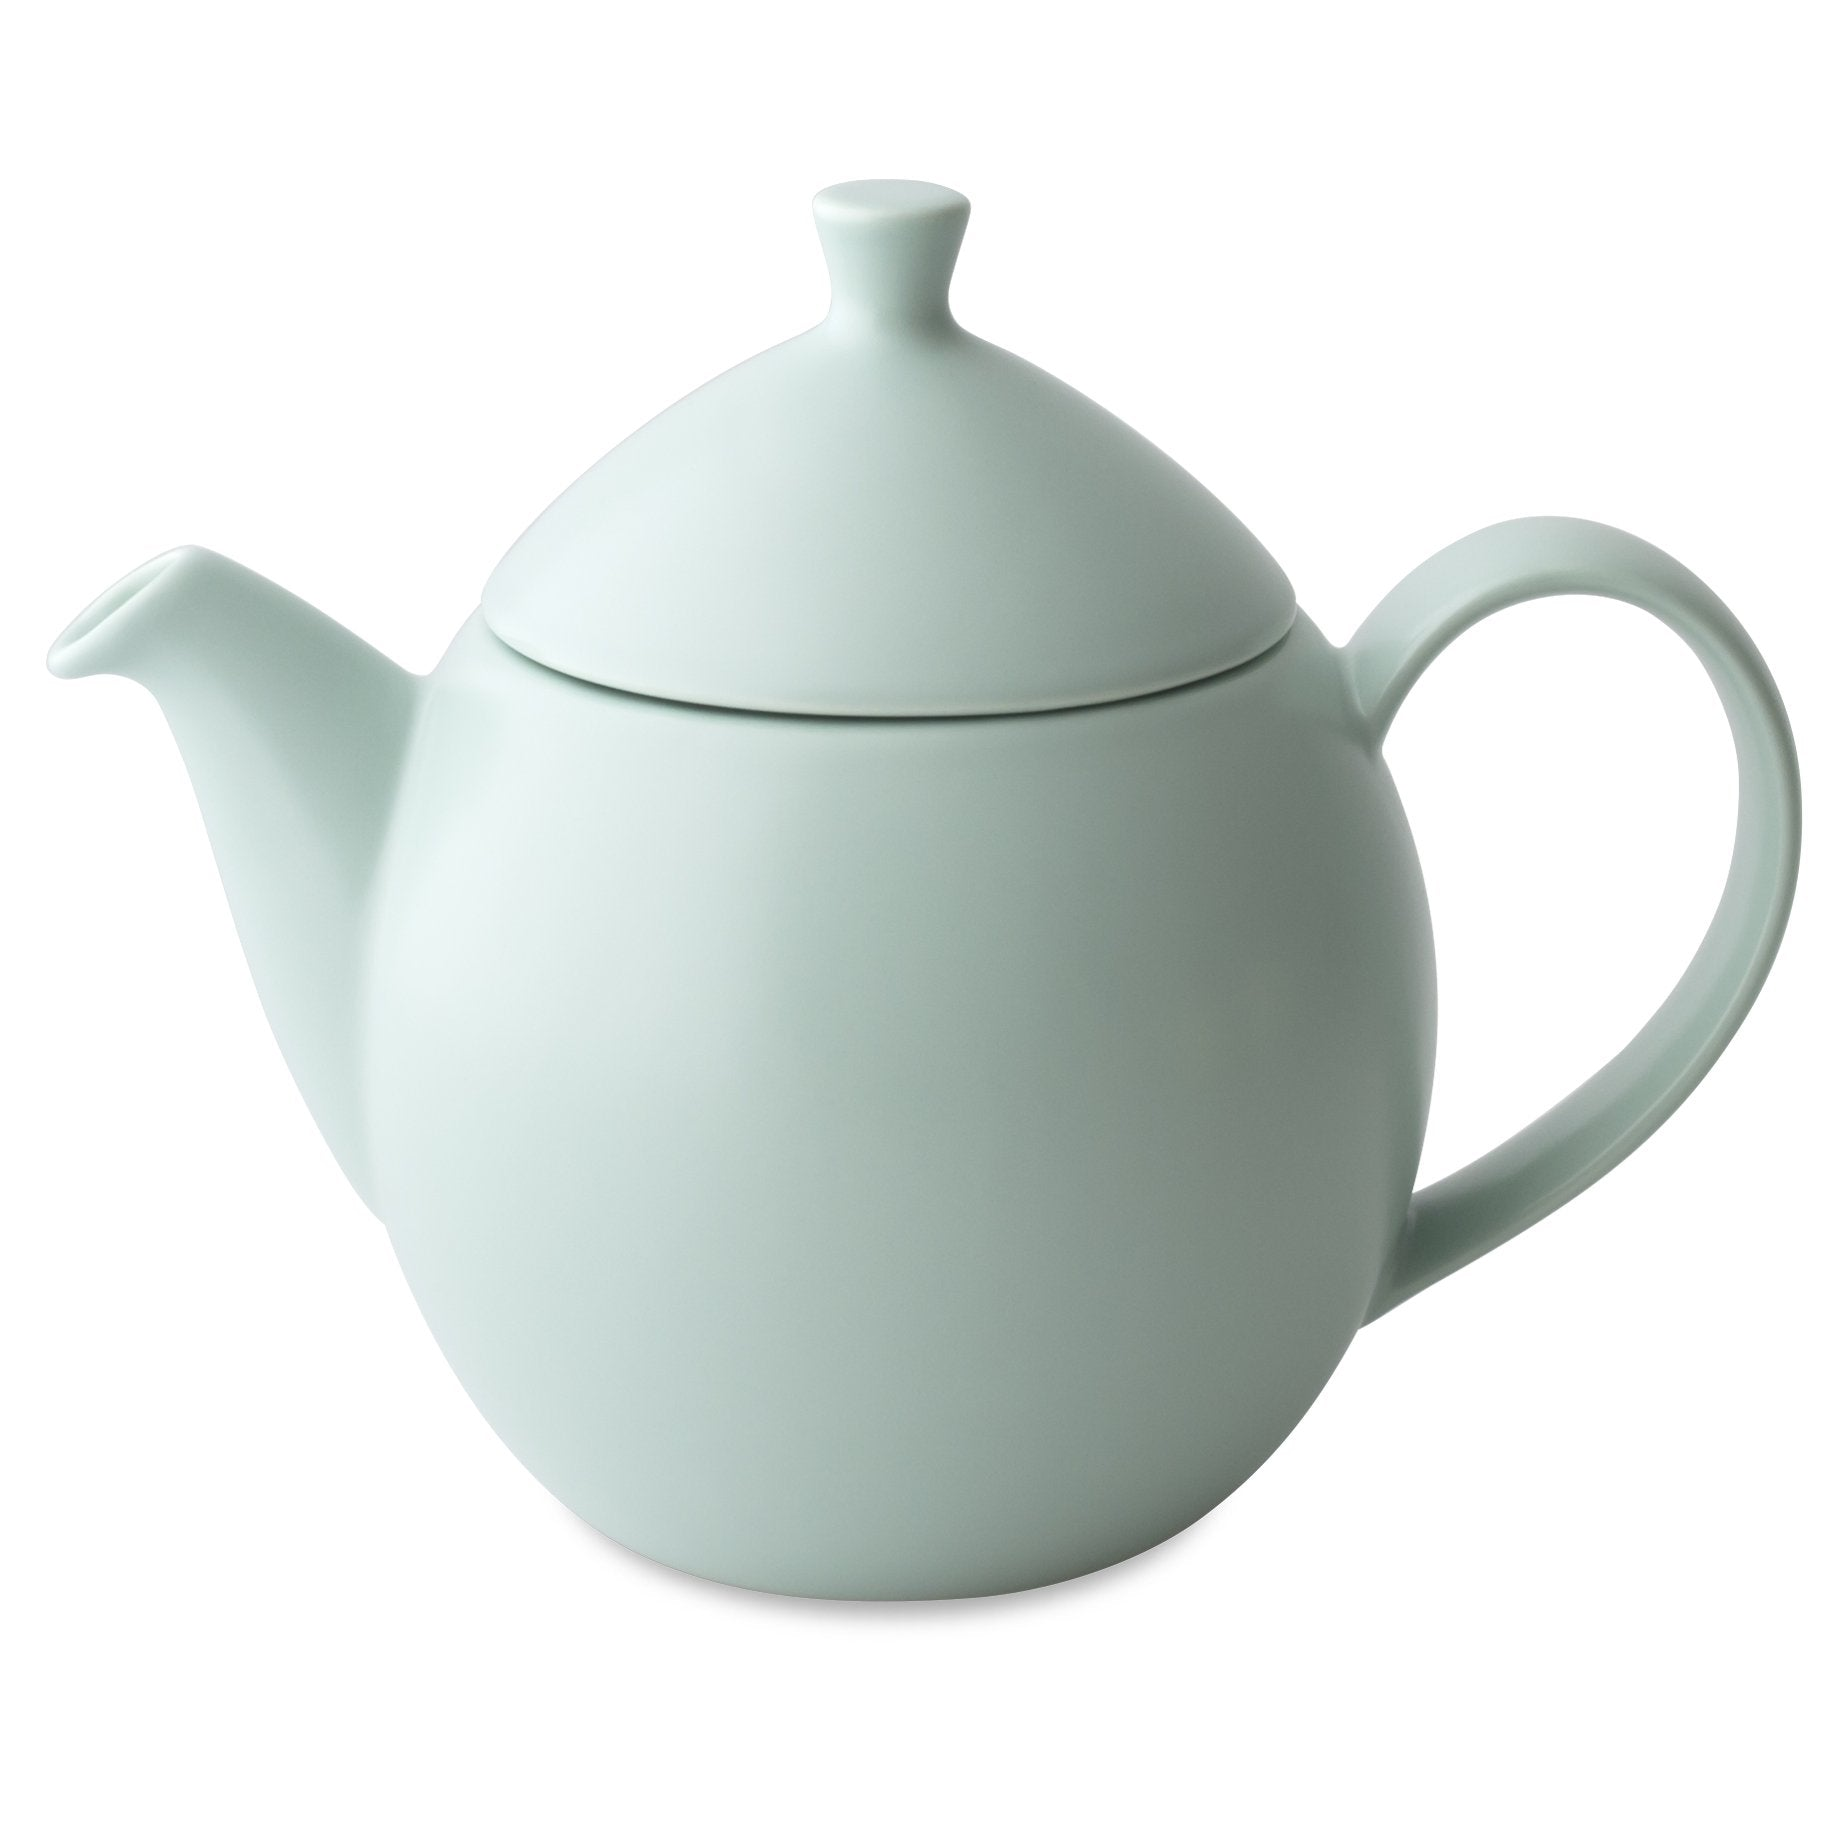 TeaLula 14 oz minty aqua colored satin finish curve Dew Teapot with large thin curve handle and detachable tea pot lid